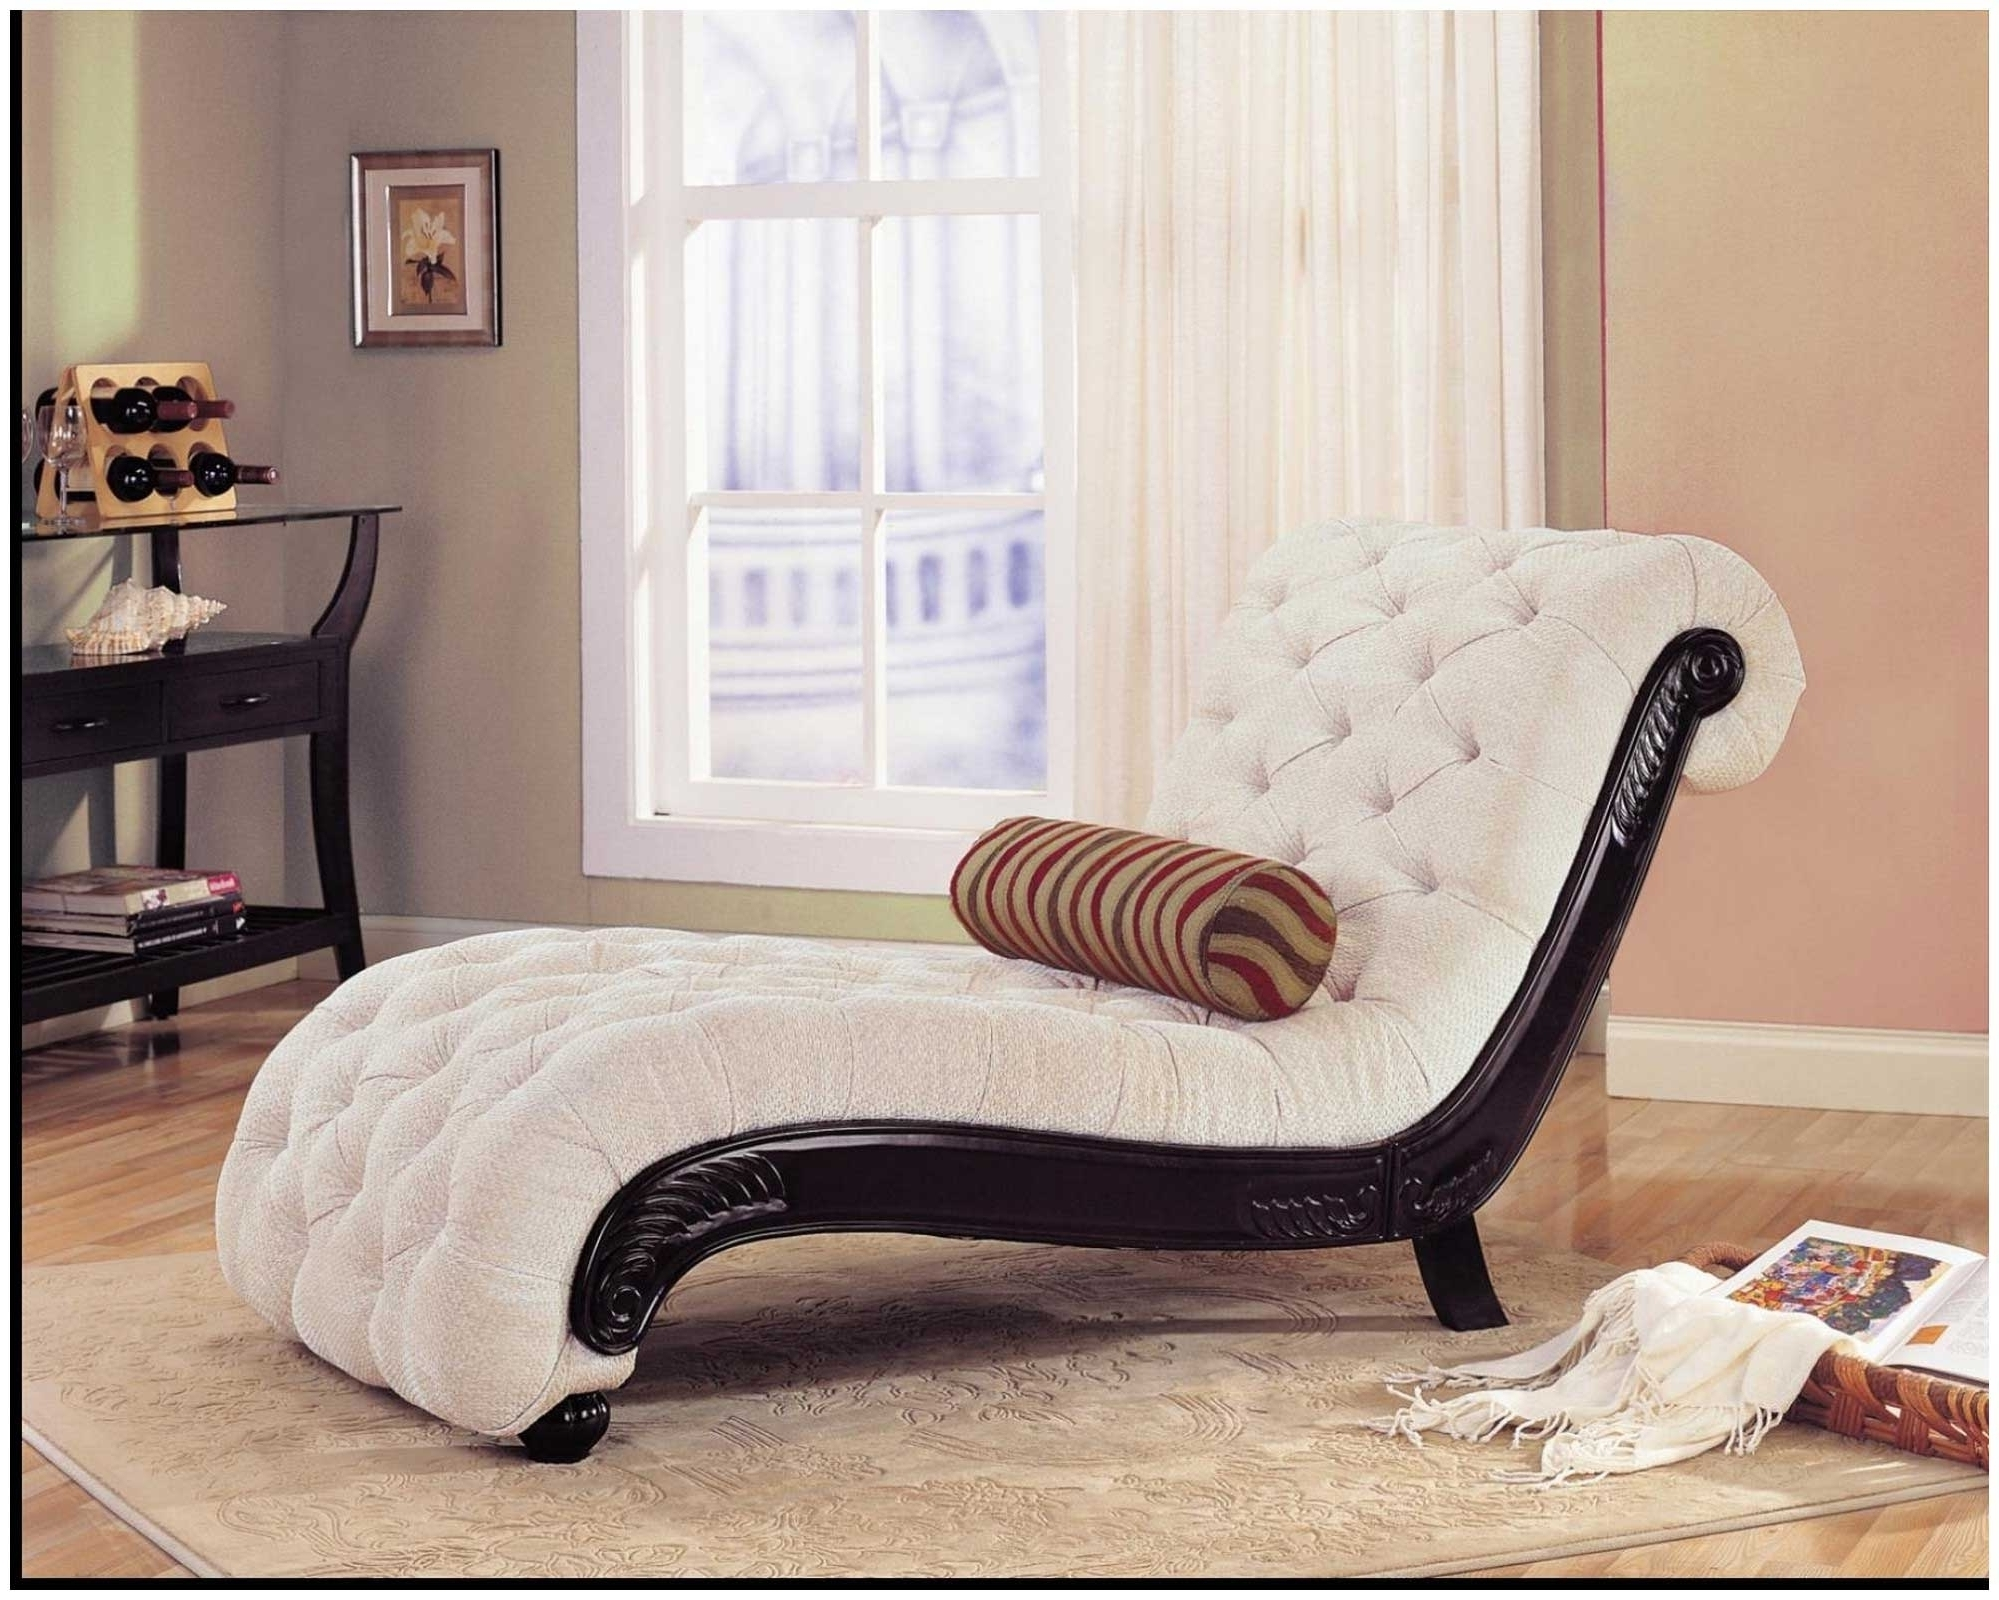 Bedroom Chairs Indoor Chaise Lounge Chairs White Colour Indoor For In Well Liked White Indoor Chaise Lounges (View 2 of 15)